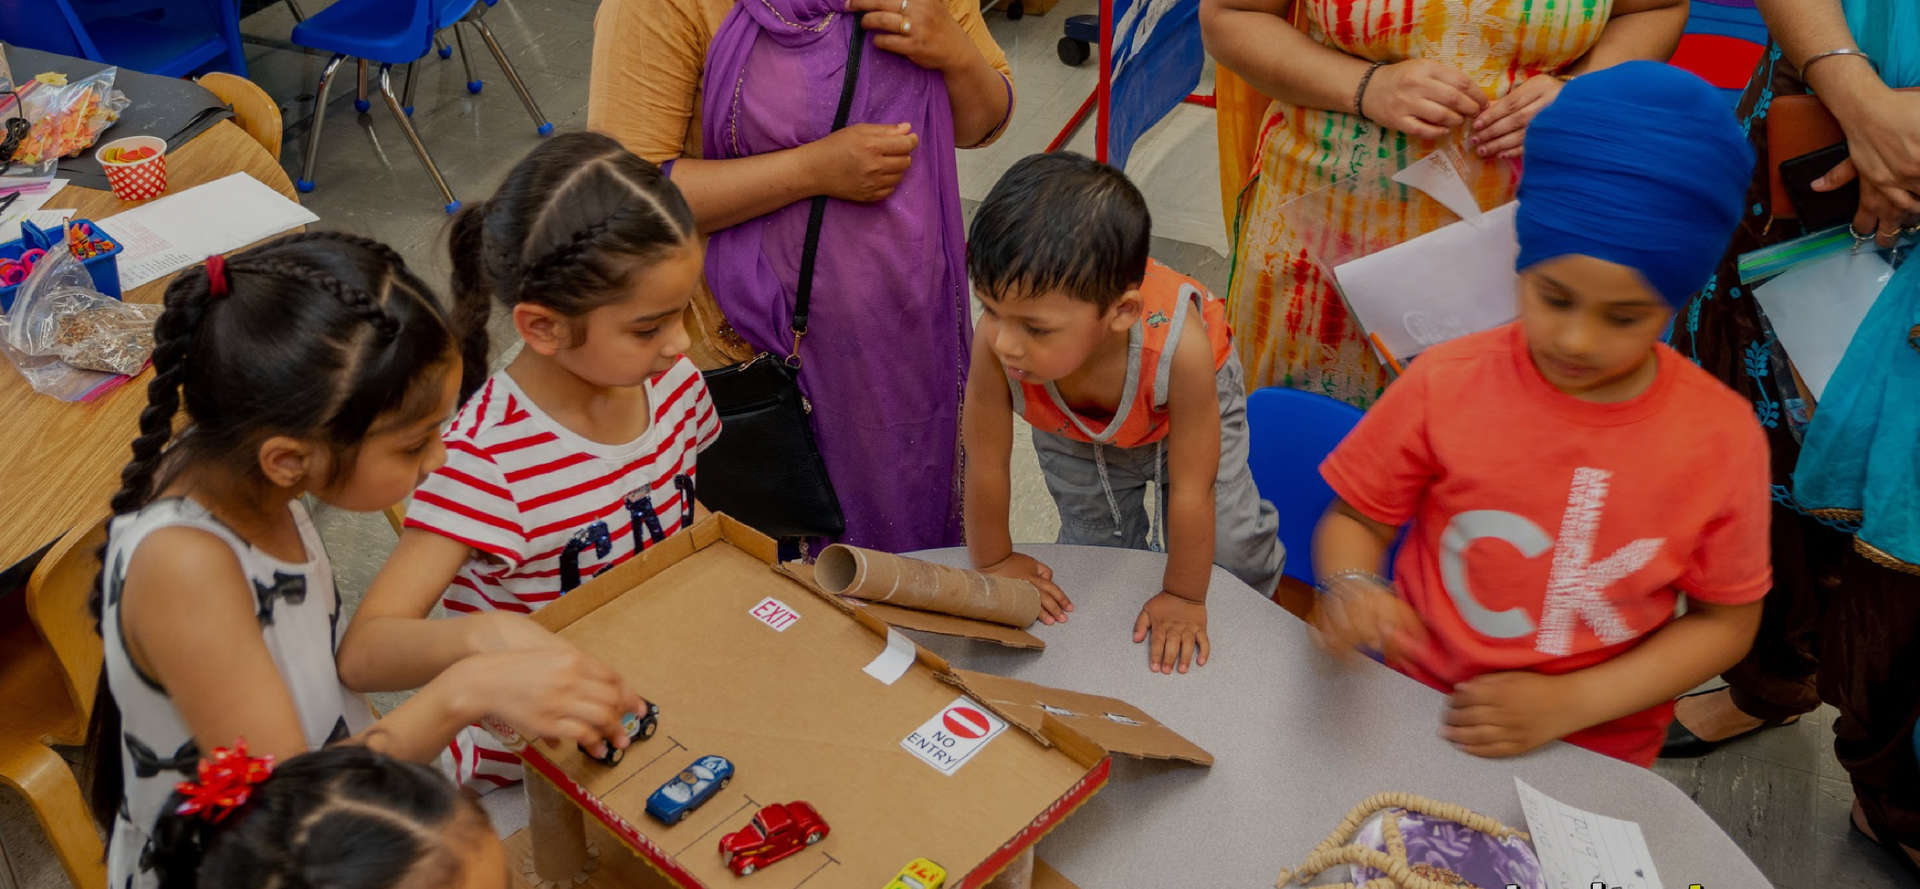 Students playing with toy cars on a cardboard ramp